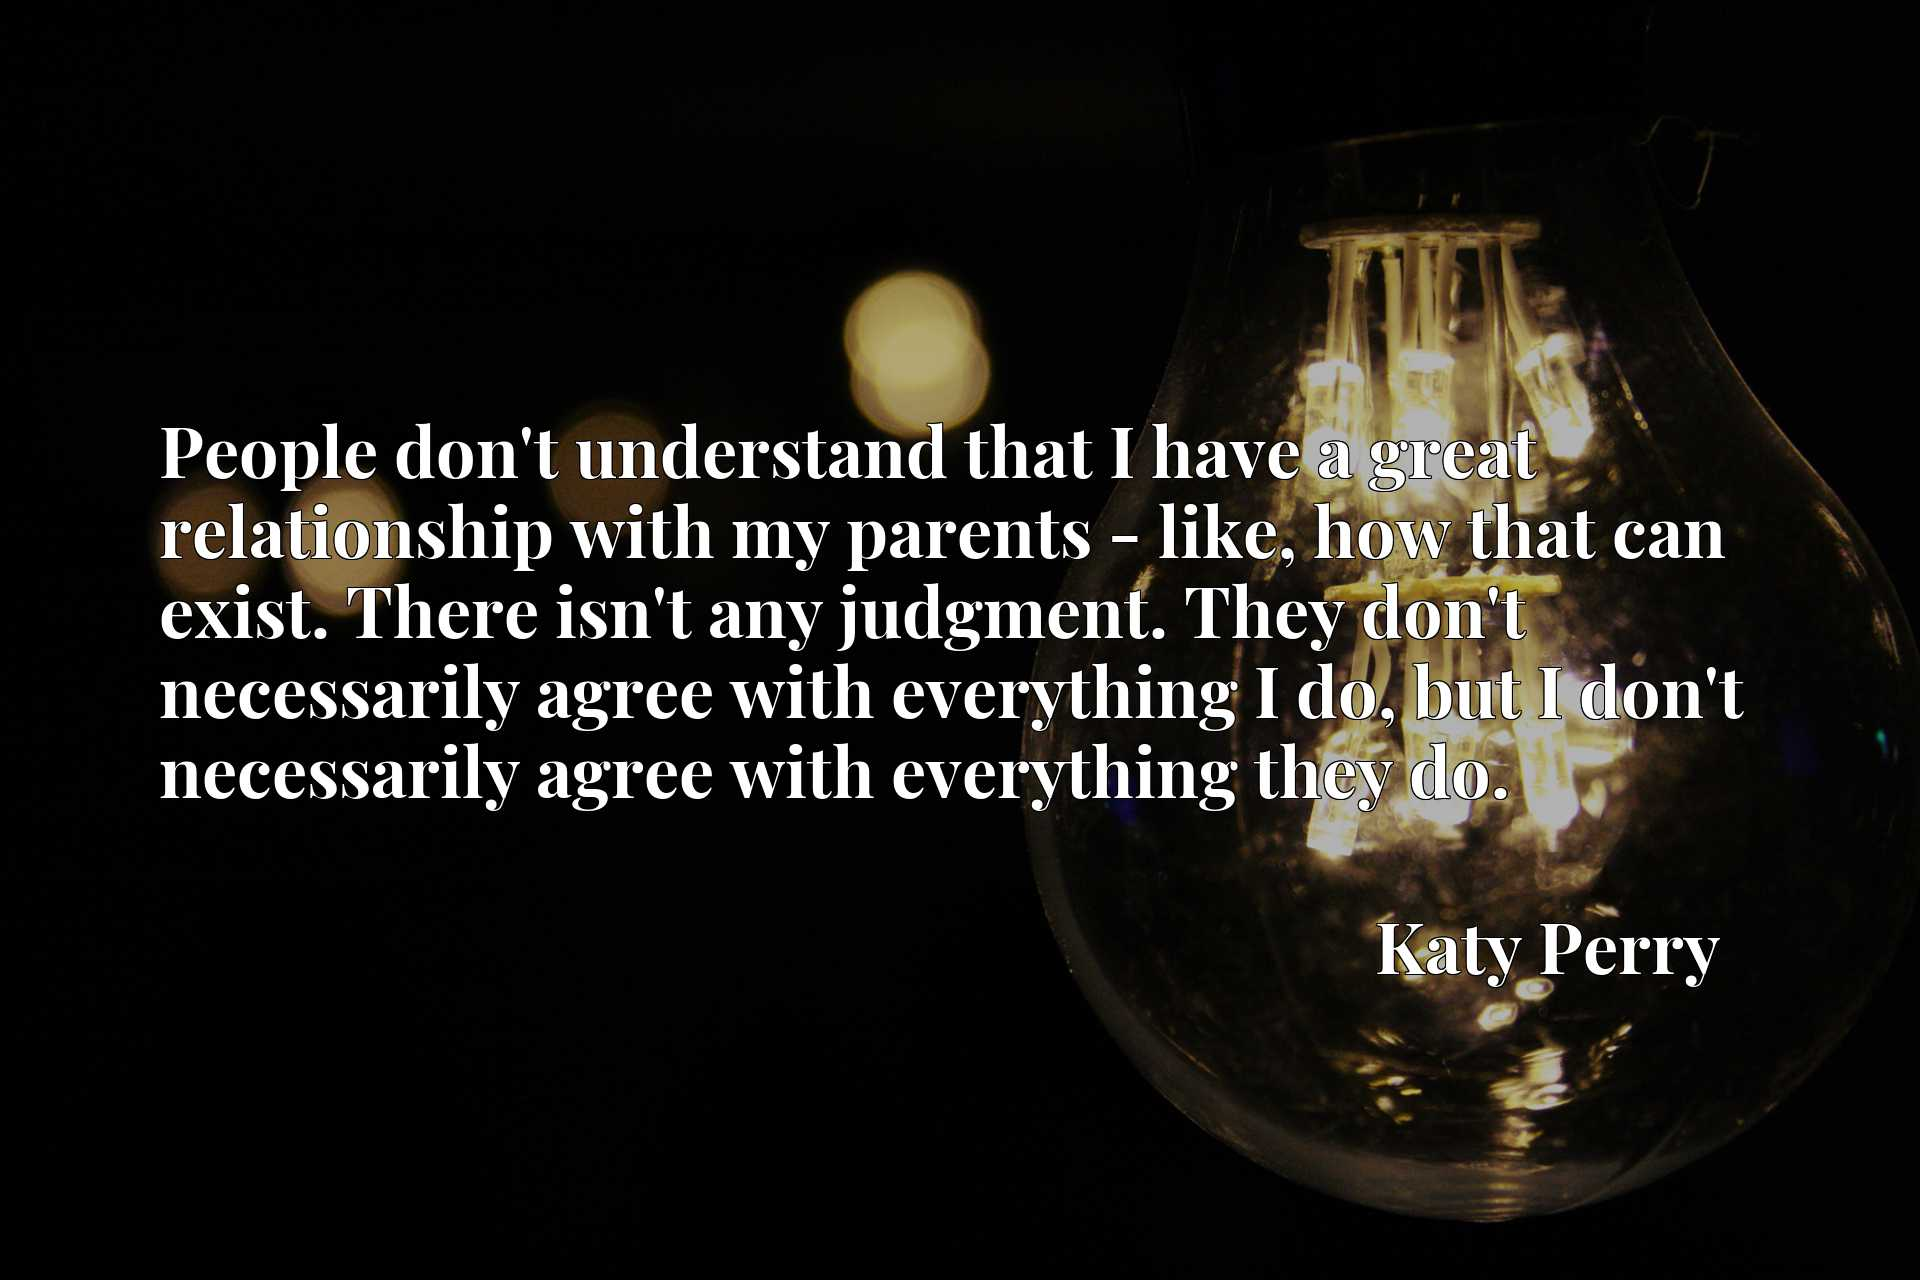 People don't understand that I have a great relationship with my parents - like, how that can exist. There isn't any judgment. They don't necessarily agree with everything I do, but I don't necessarily agree with everything they do.